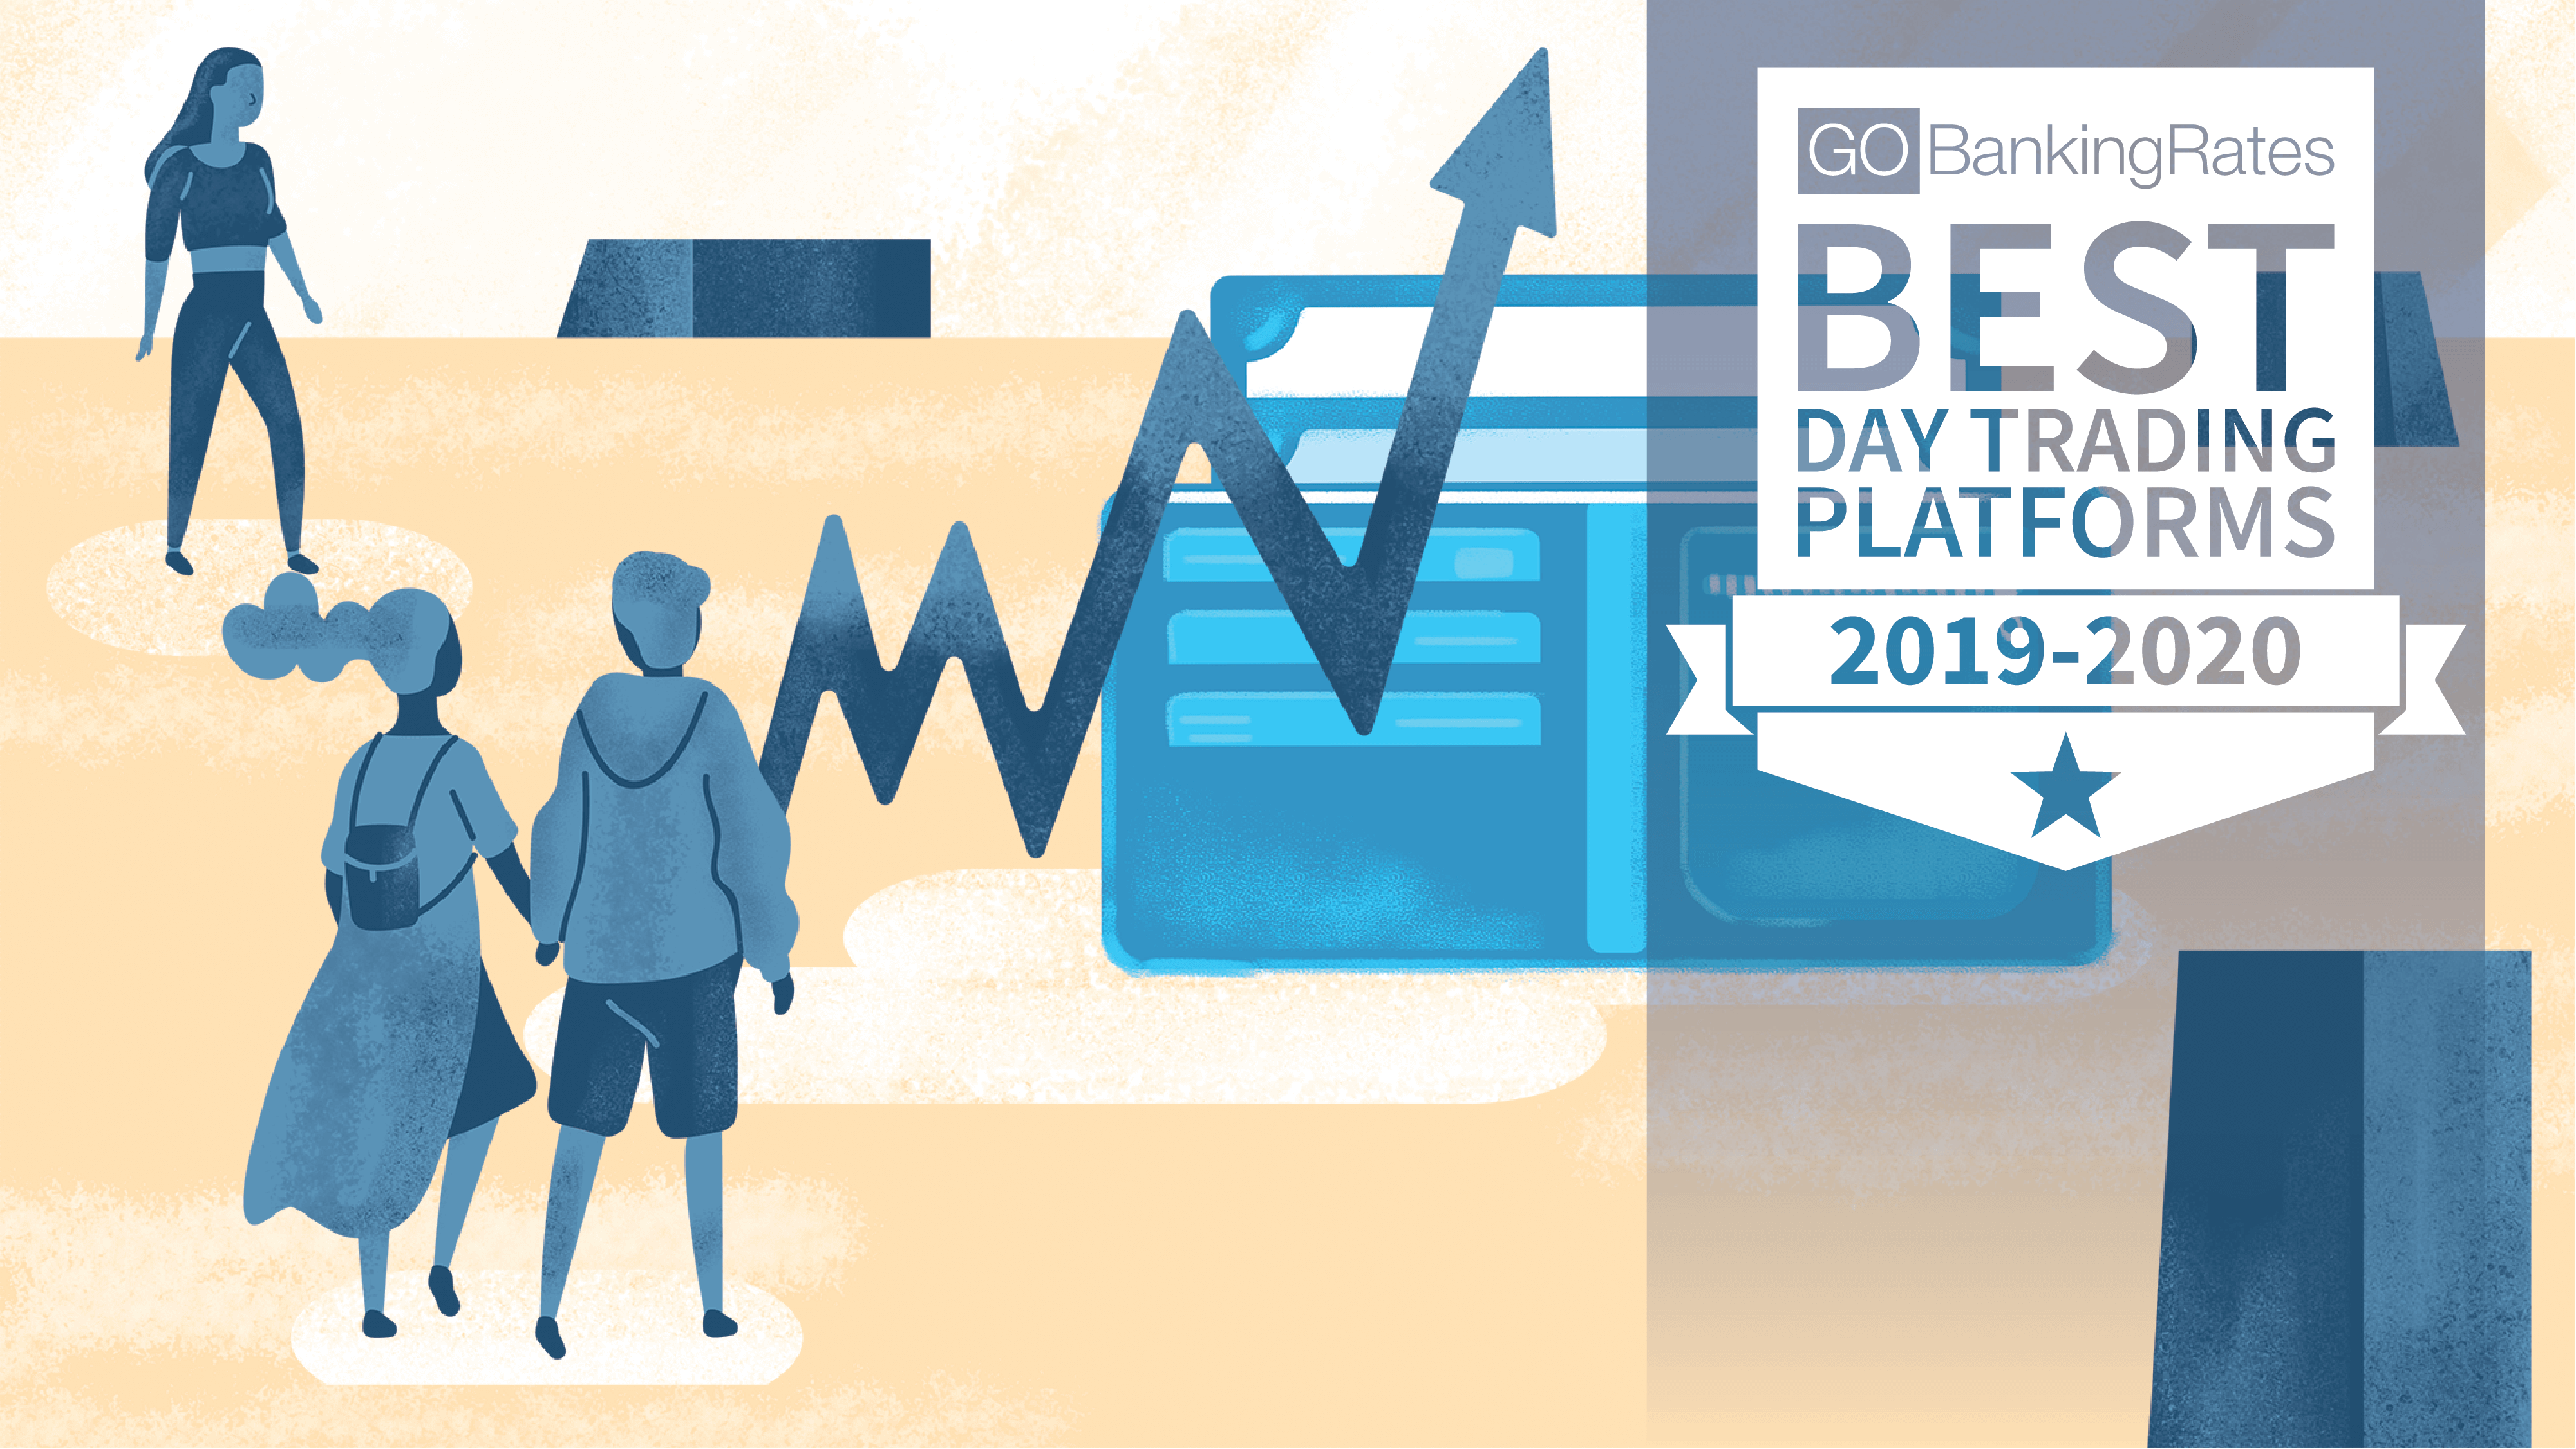 Best Day Trading Platforms of 2019-2020